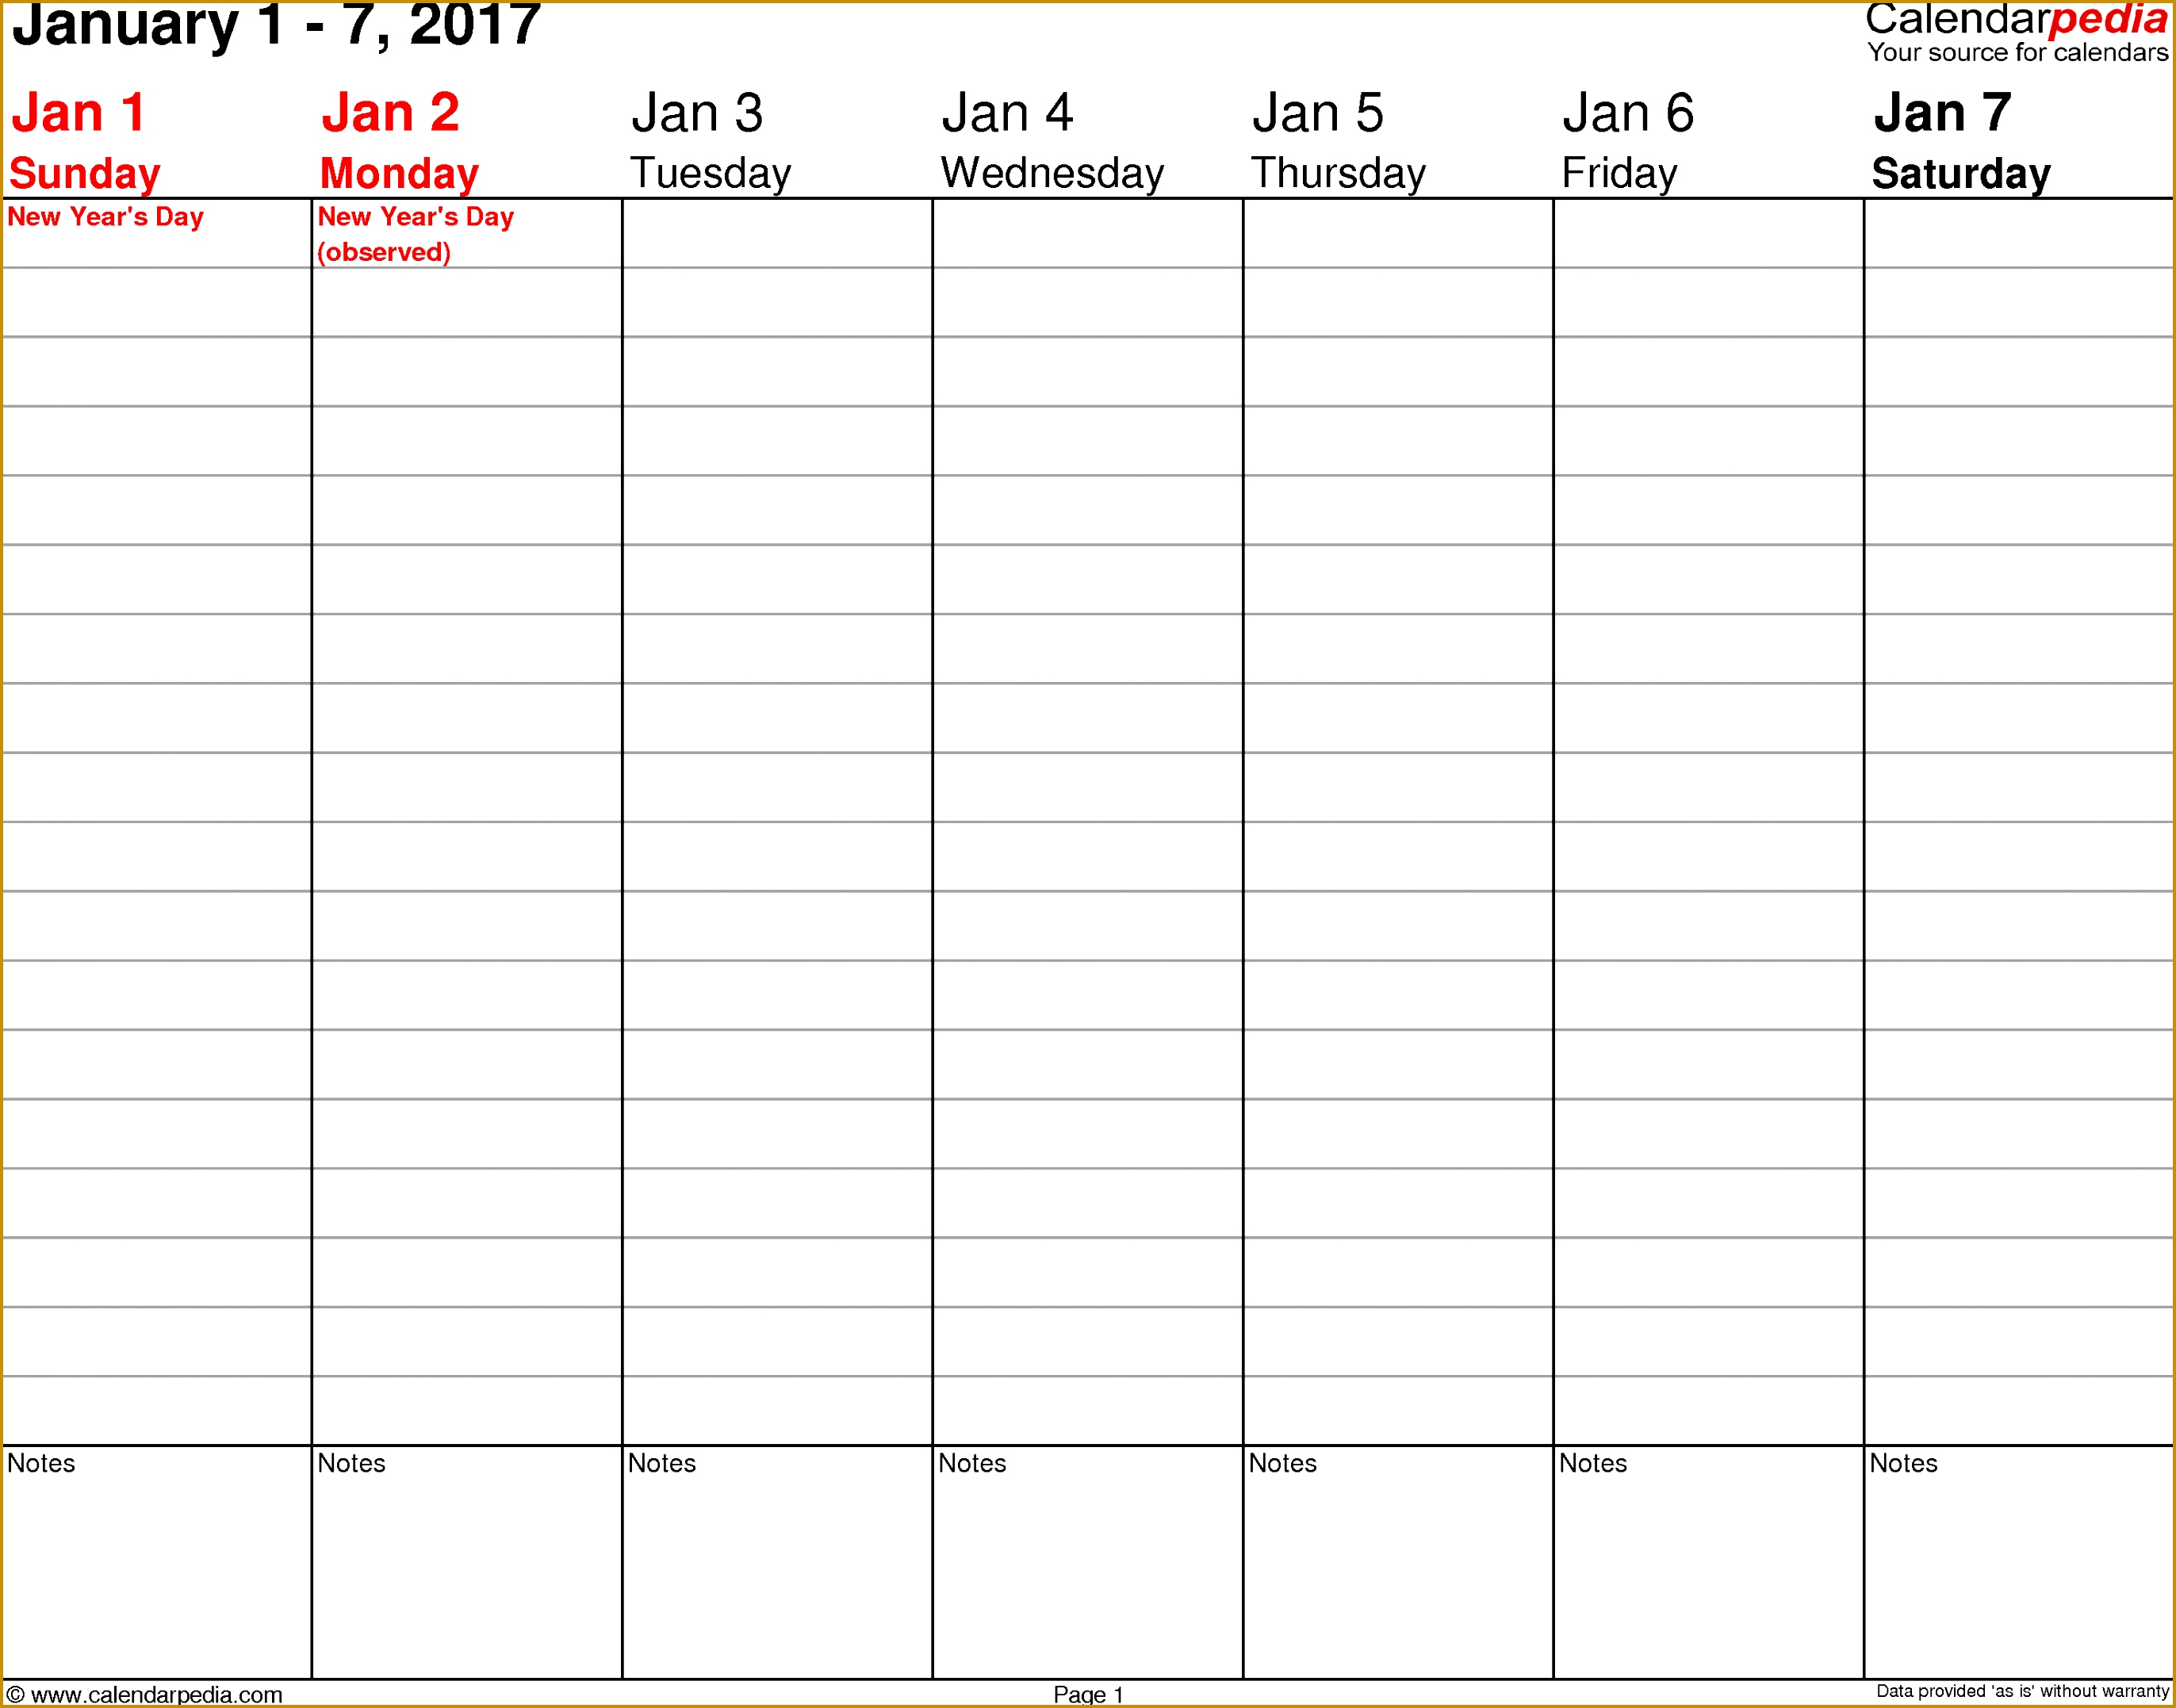 Weekly calendar 2017 template for PDF version 3 landscape 53 pages no 27442154